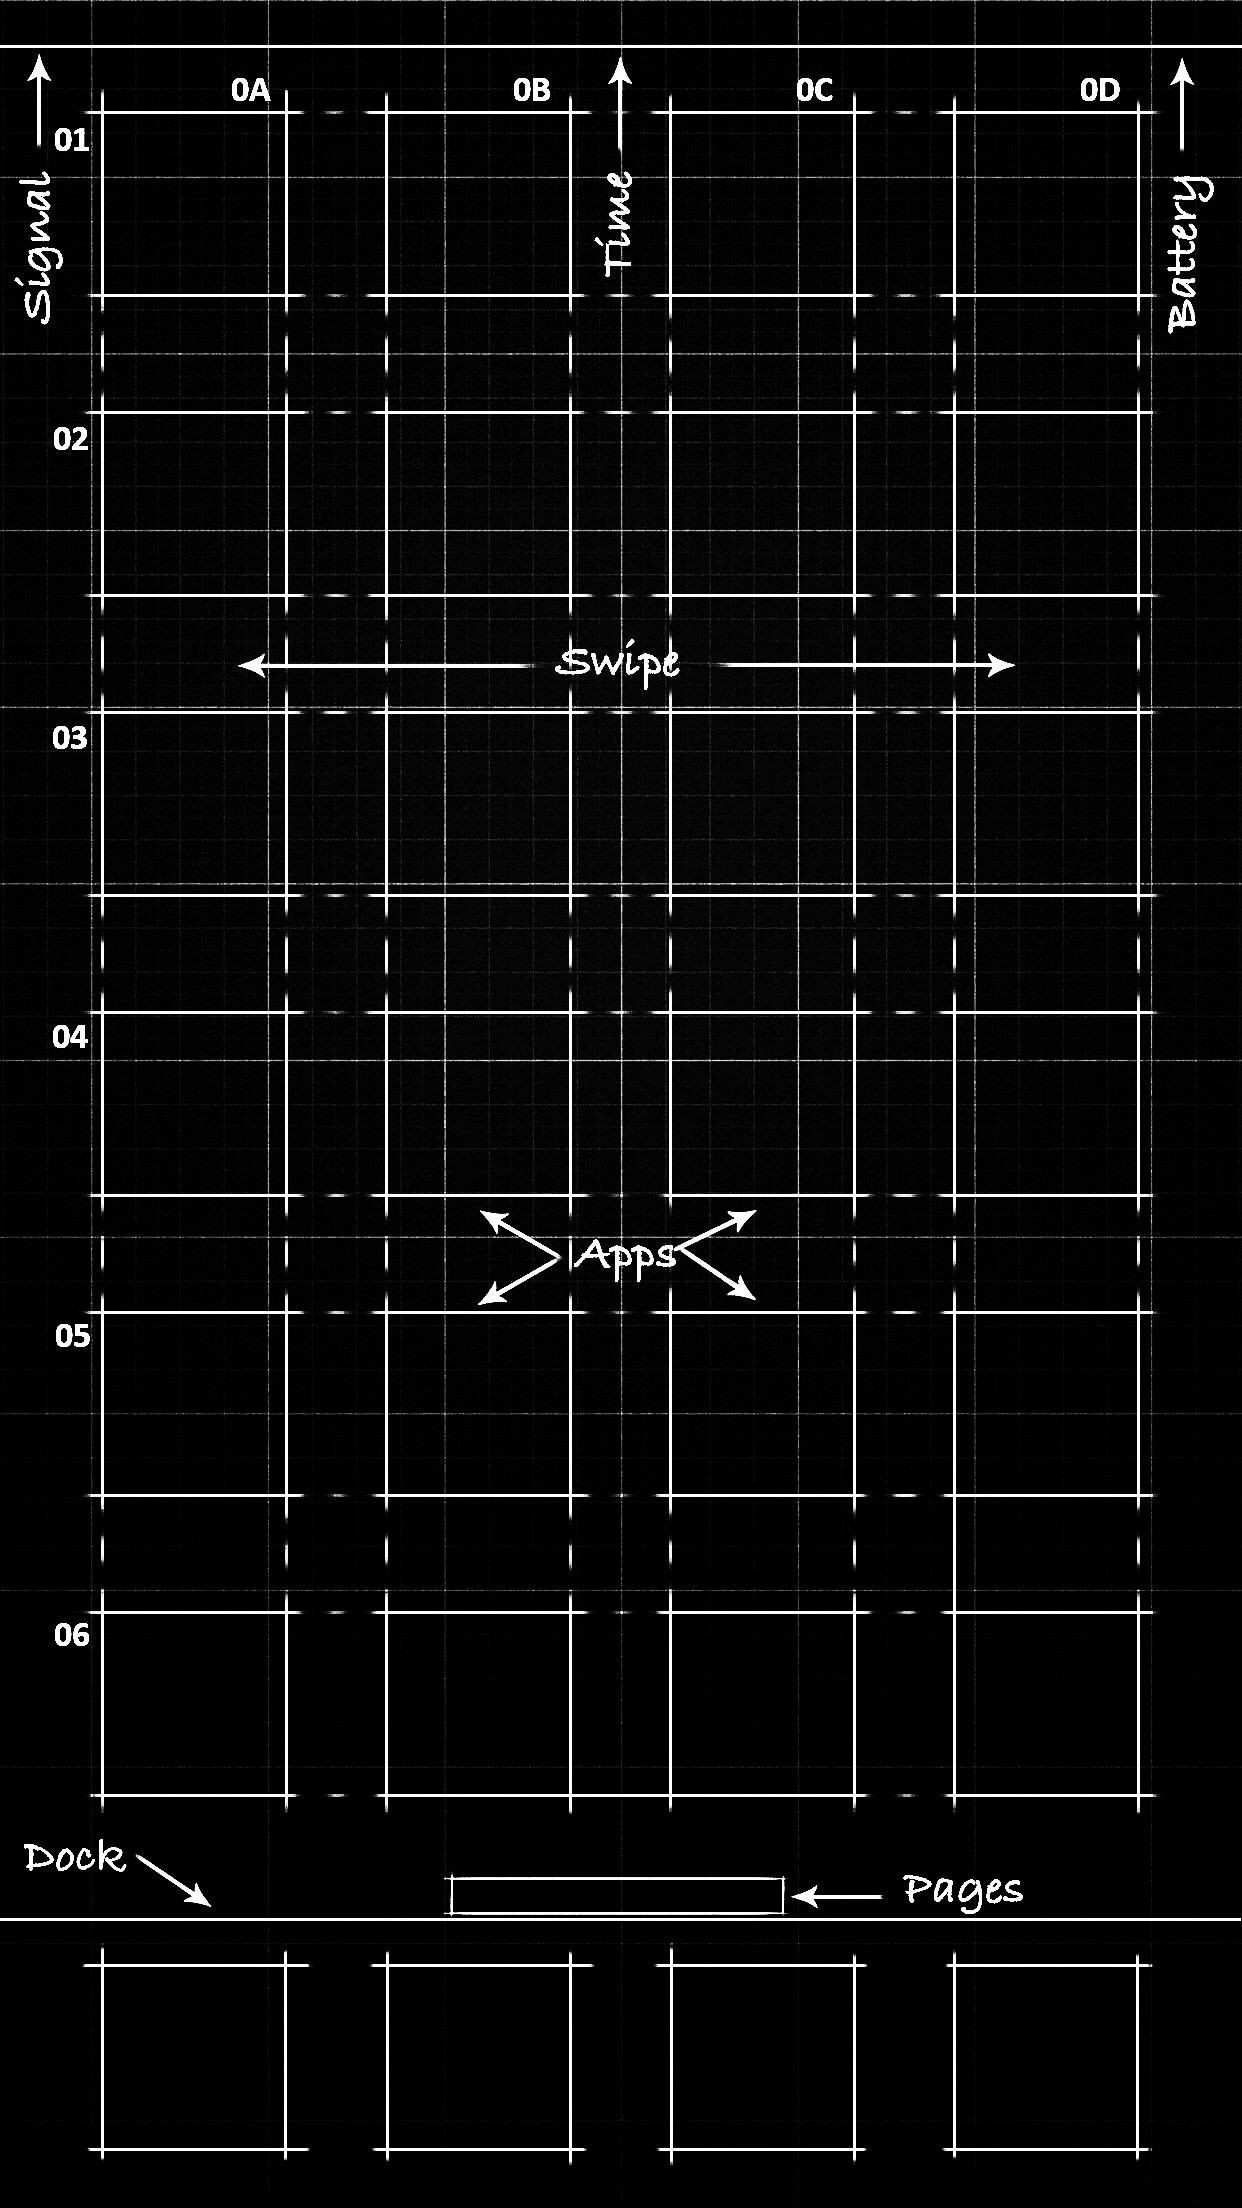 1242x2208 World Blueprint iPhone Wallpaper Beautiful Letter J iPhone Wallpaper Fresh  Blueprint Background for iPhone 6